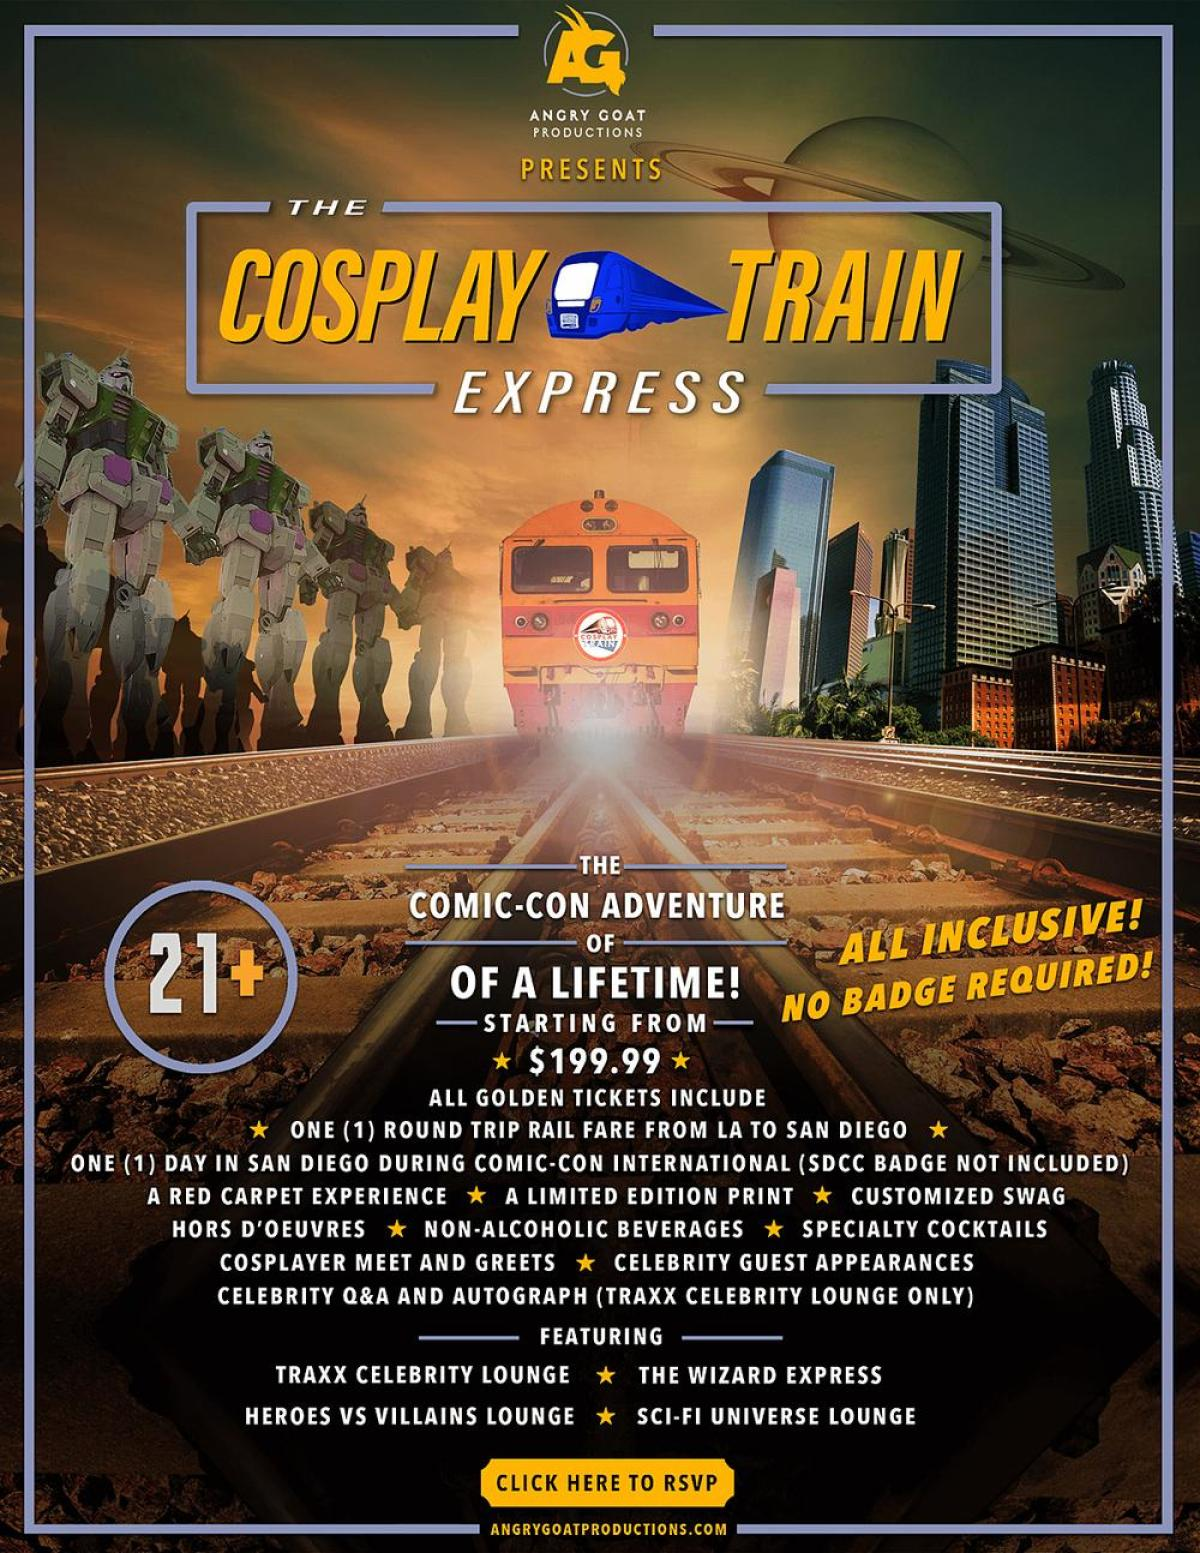 Cosplay Train Express